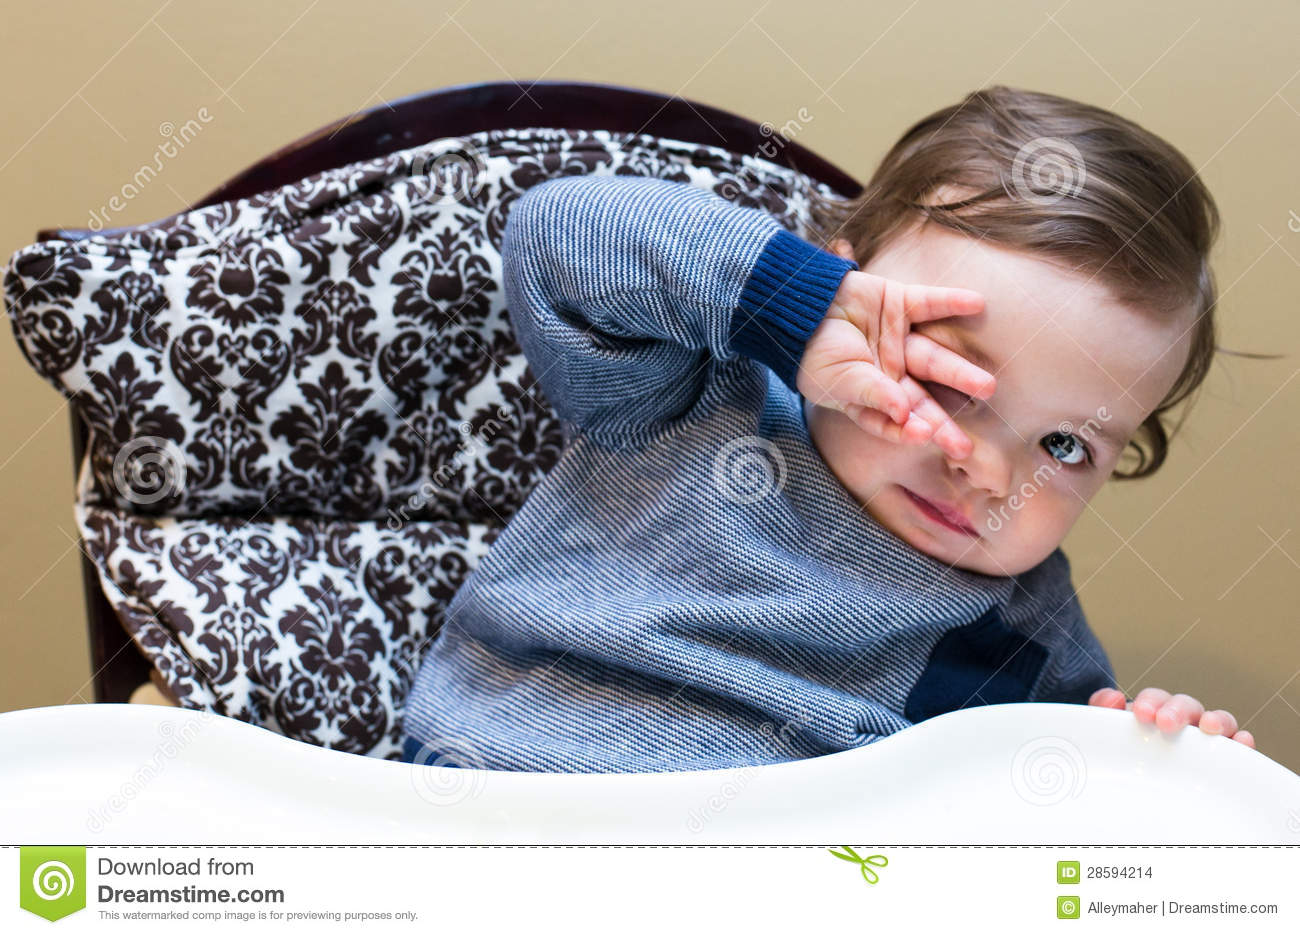 High Chair For Baby Boy Baby Boy In High Chair Hiding Behind His Hand Stock Images